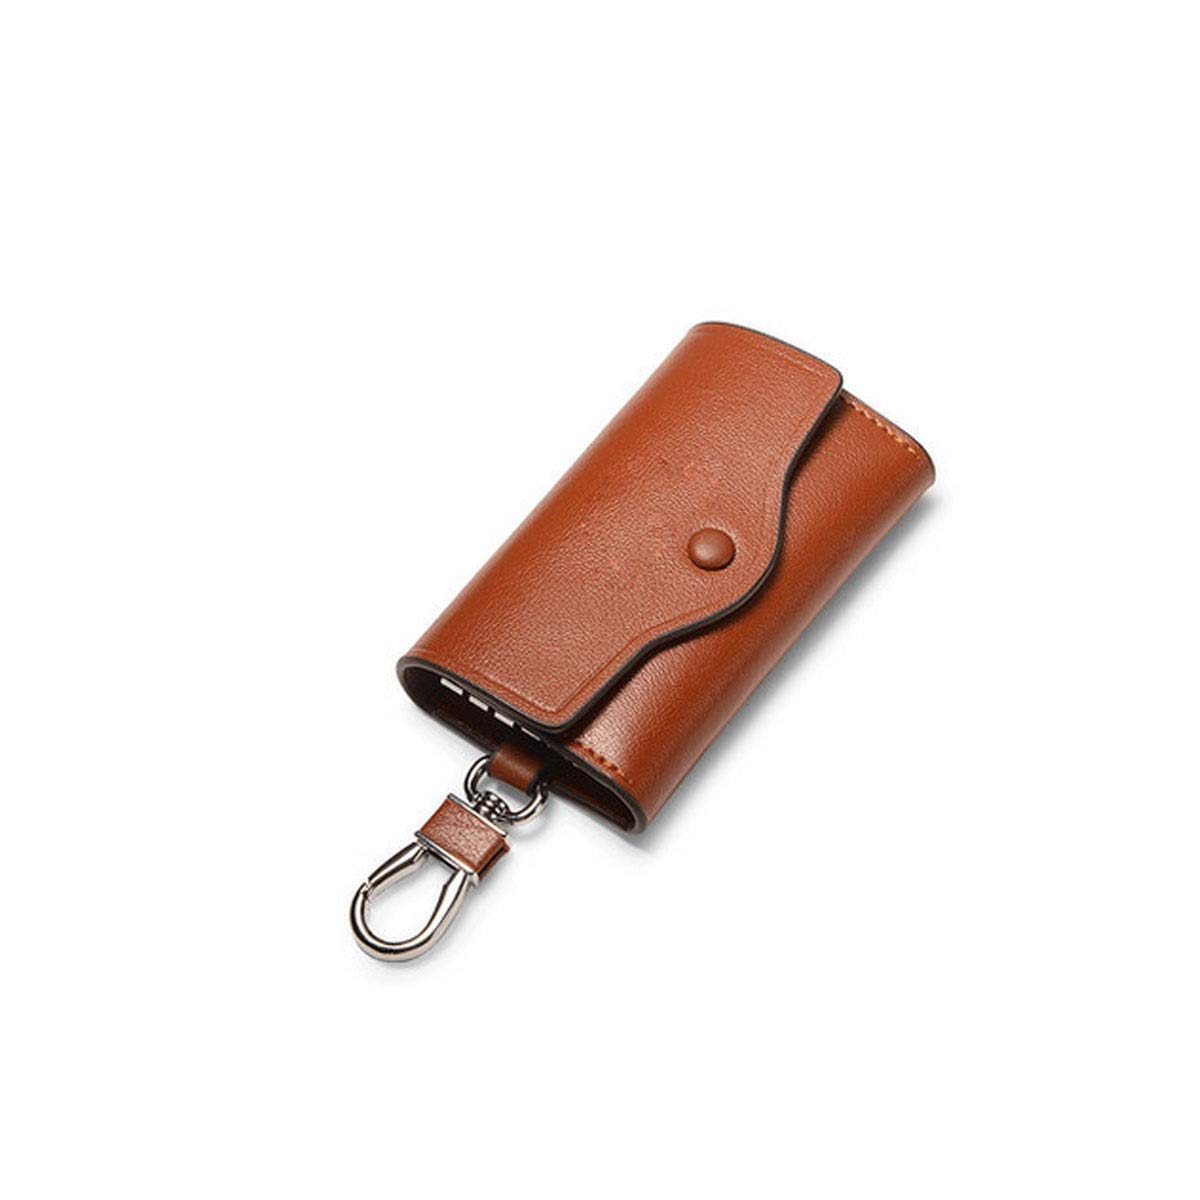 Brown Hongyushanghang Key Case, Men's Fashion Leather Key Storage Bag, Large Capacity, 6 Key Rings, 2 Card Slots and 1 Car Keychain, Black, Brown, bluee, Size  4.4  2.6  1 (inches) Safety (color   Brown)